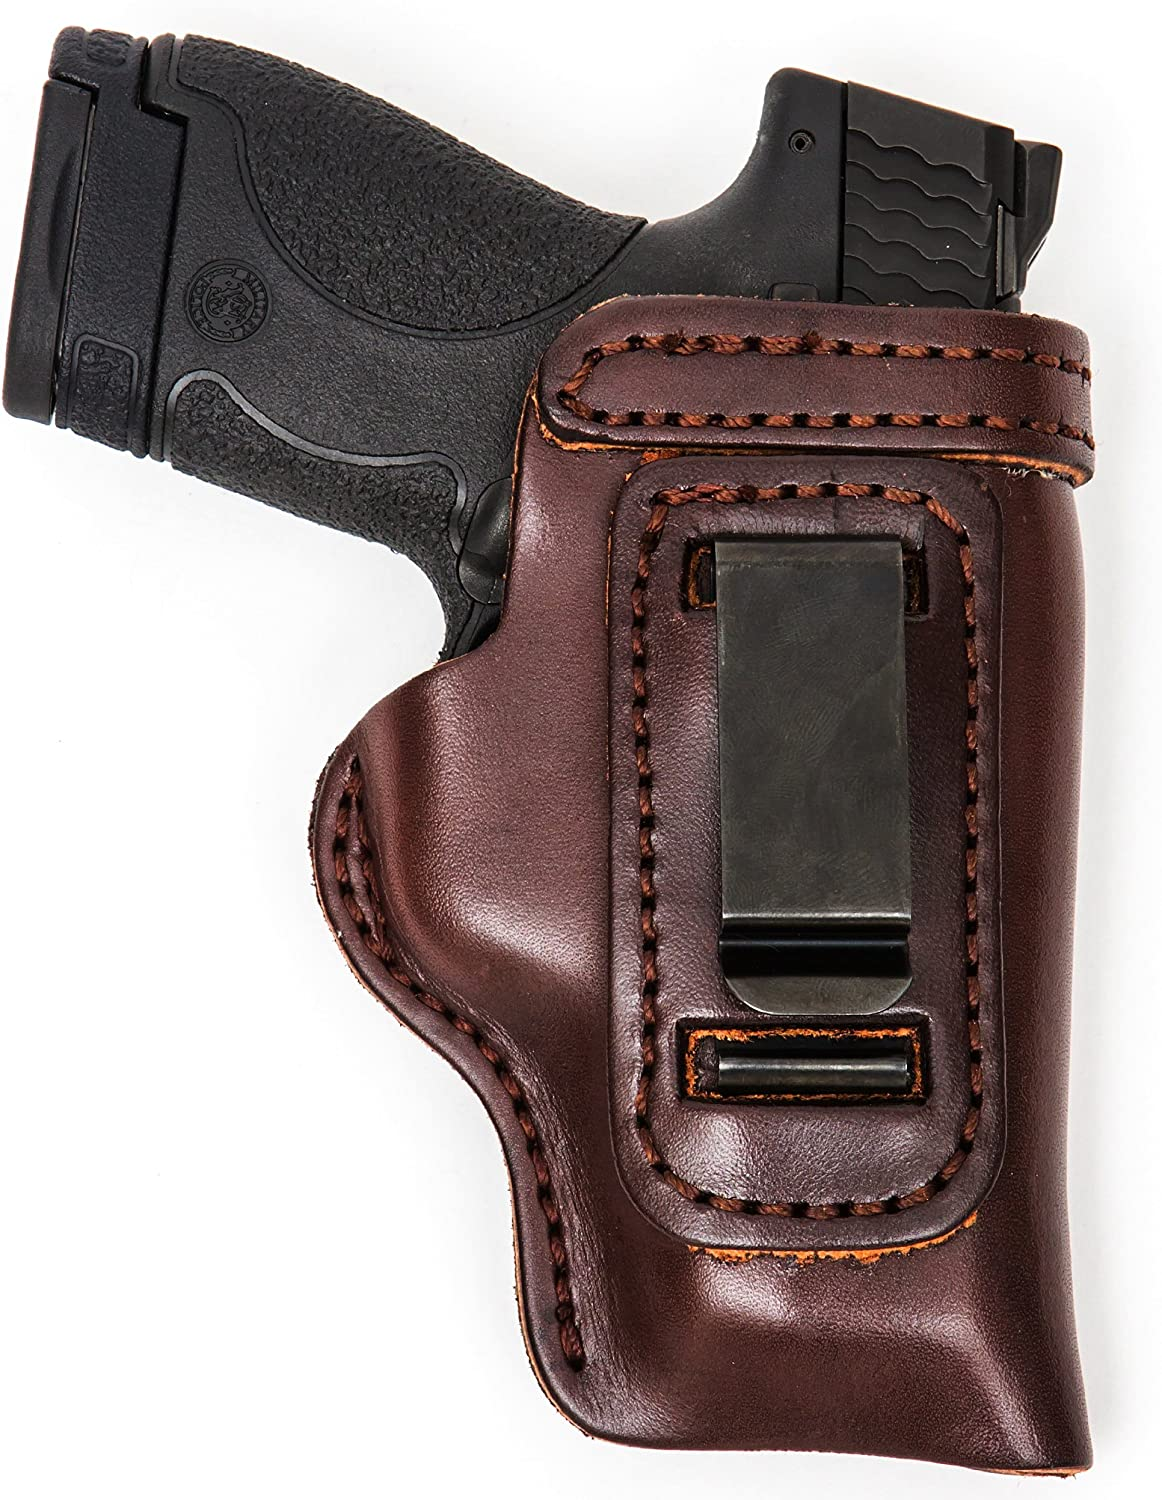 Pro Carry S&W M&P Sub Compact HD CCW Leather IWB Gun Holster Brown